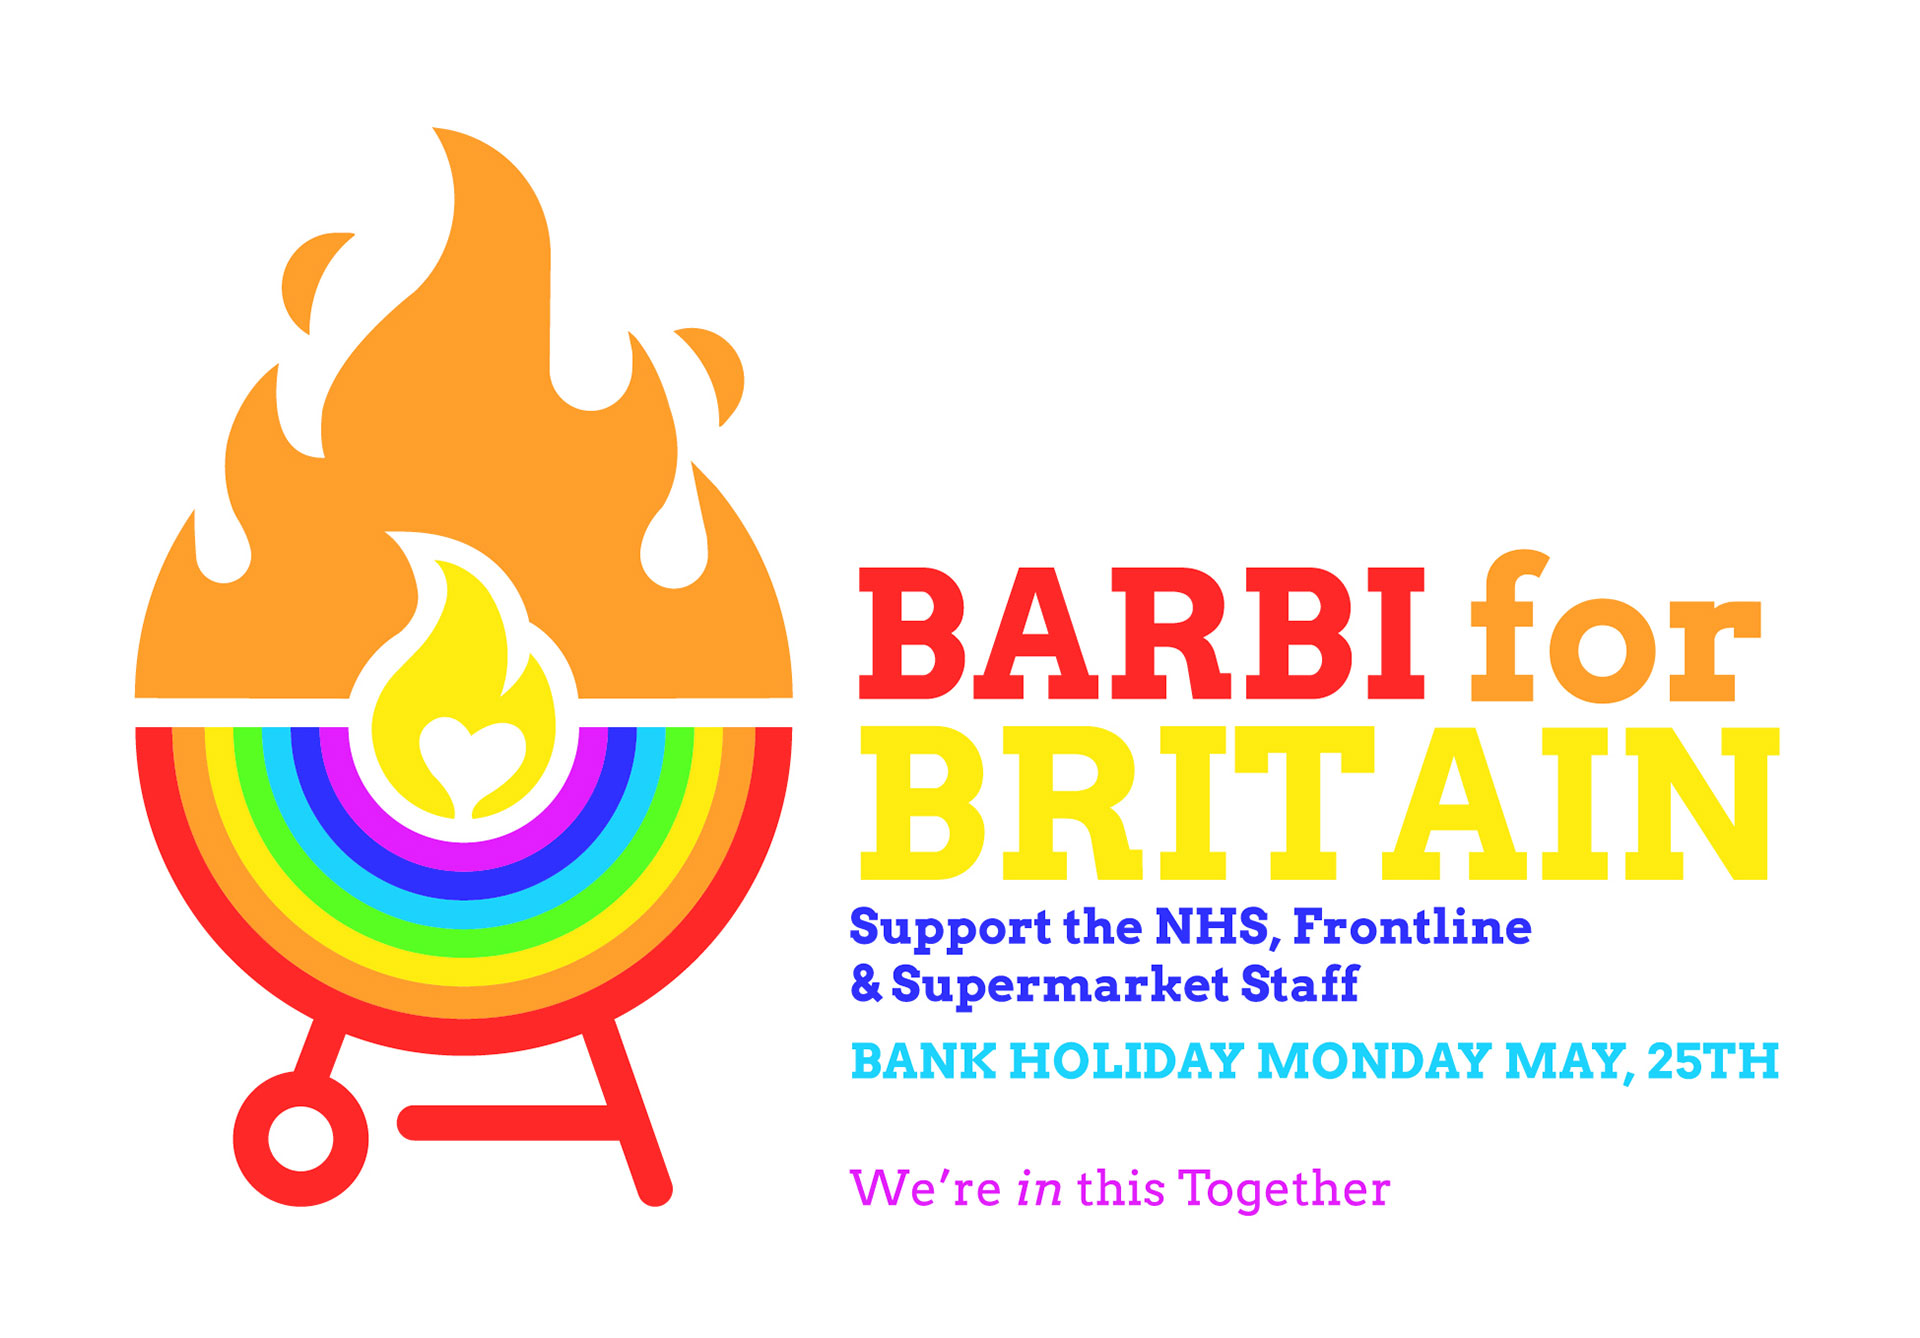 BARBI for BRITAIN 2020